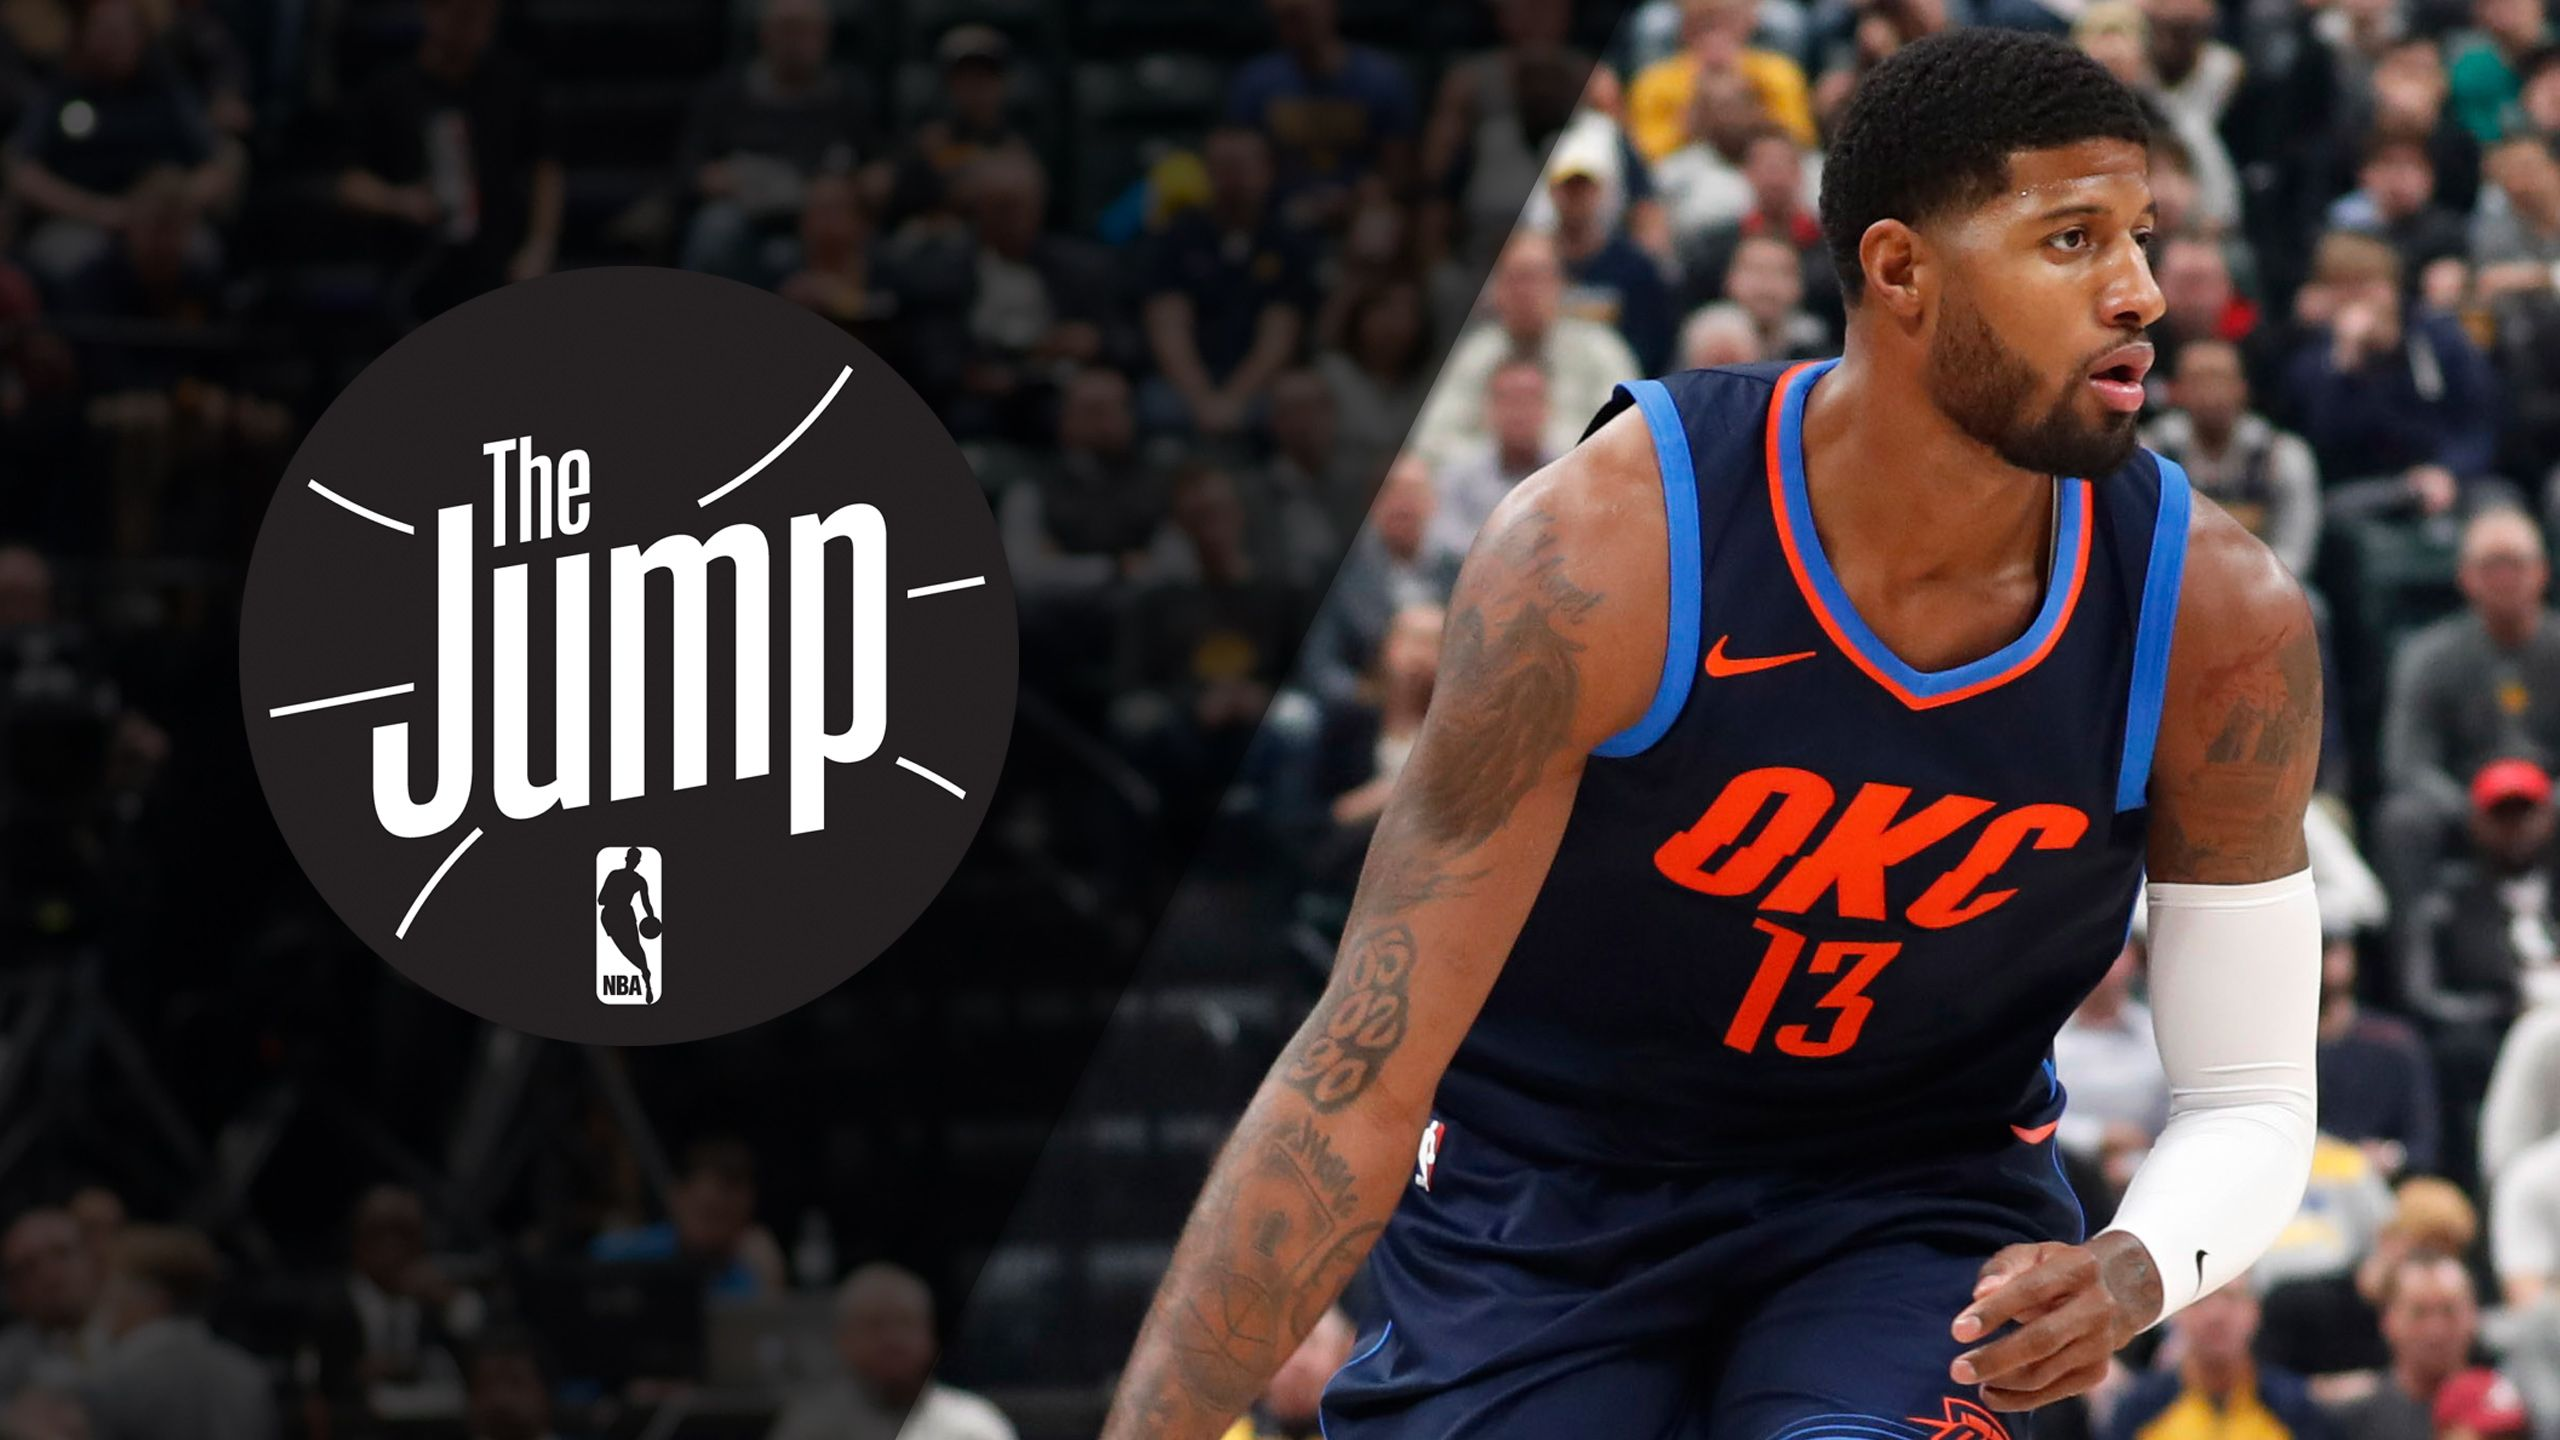 Thu, 12/14 - NBA: The Jump